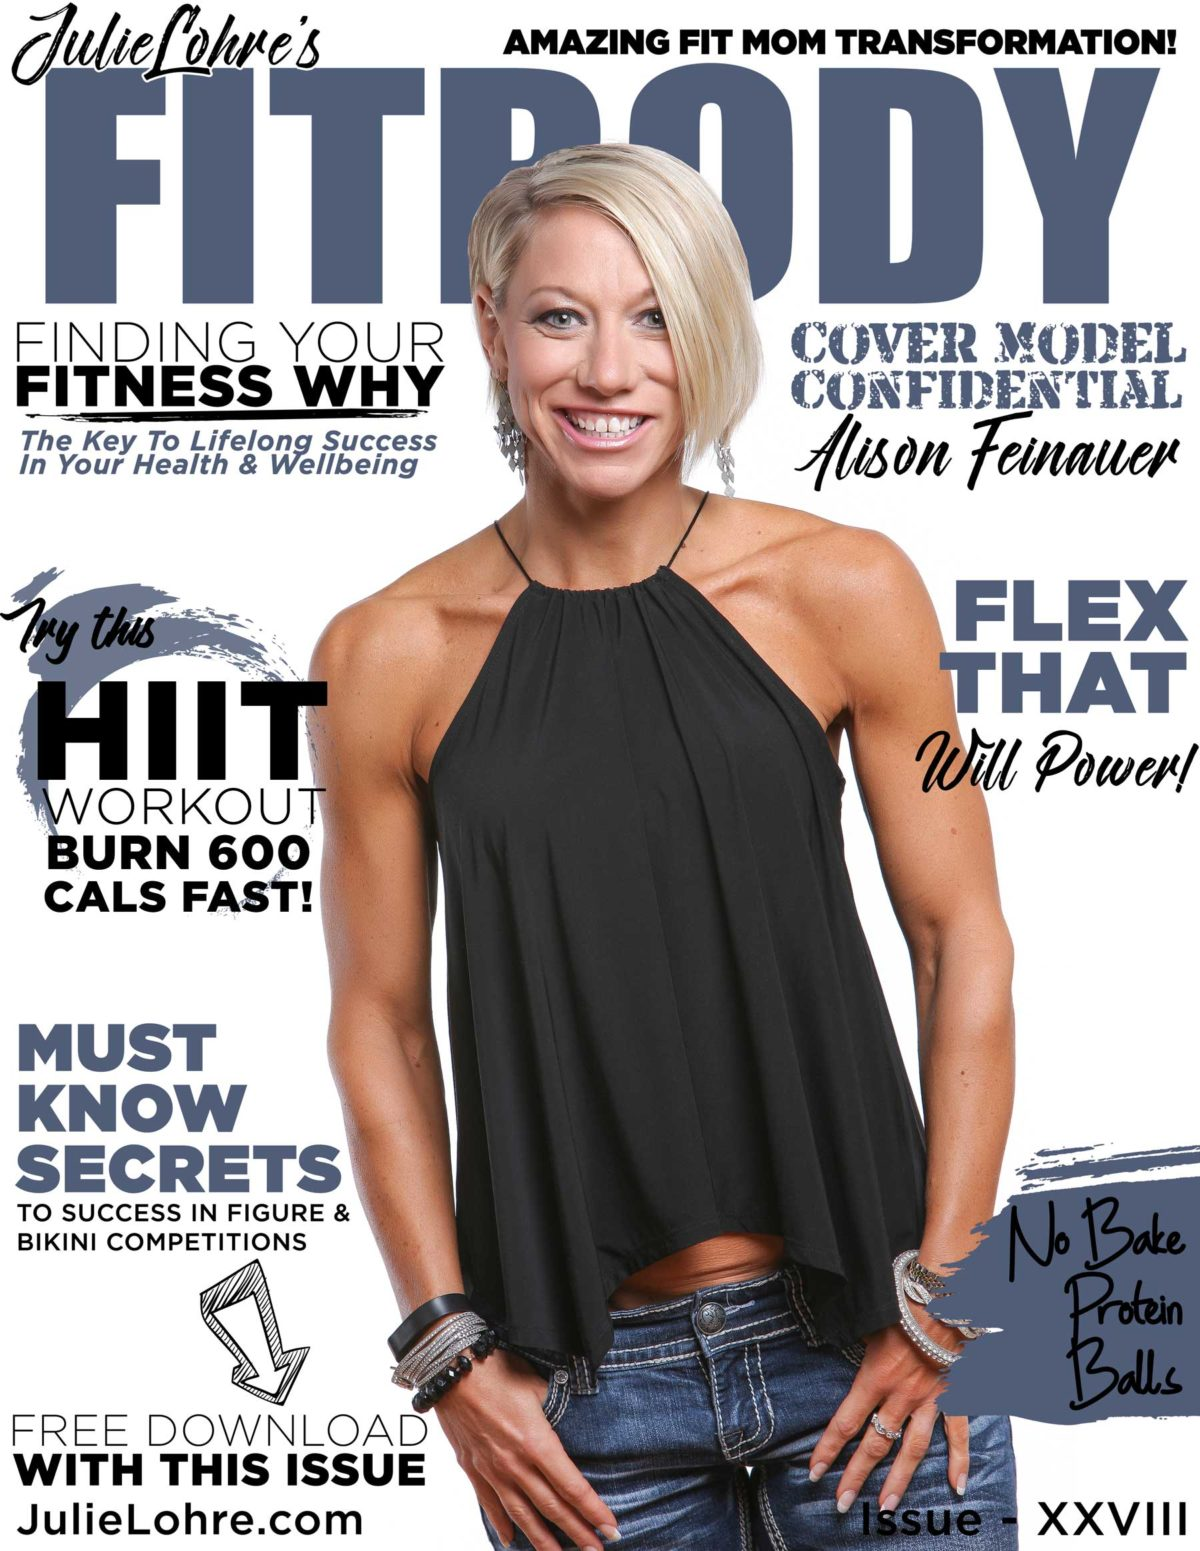 FITBODY Magazine XXVVIII Fit Mom Transformation